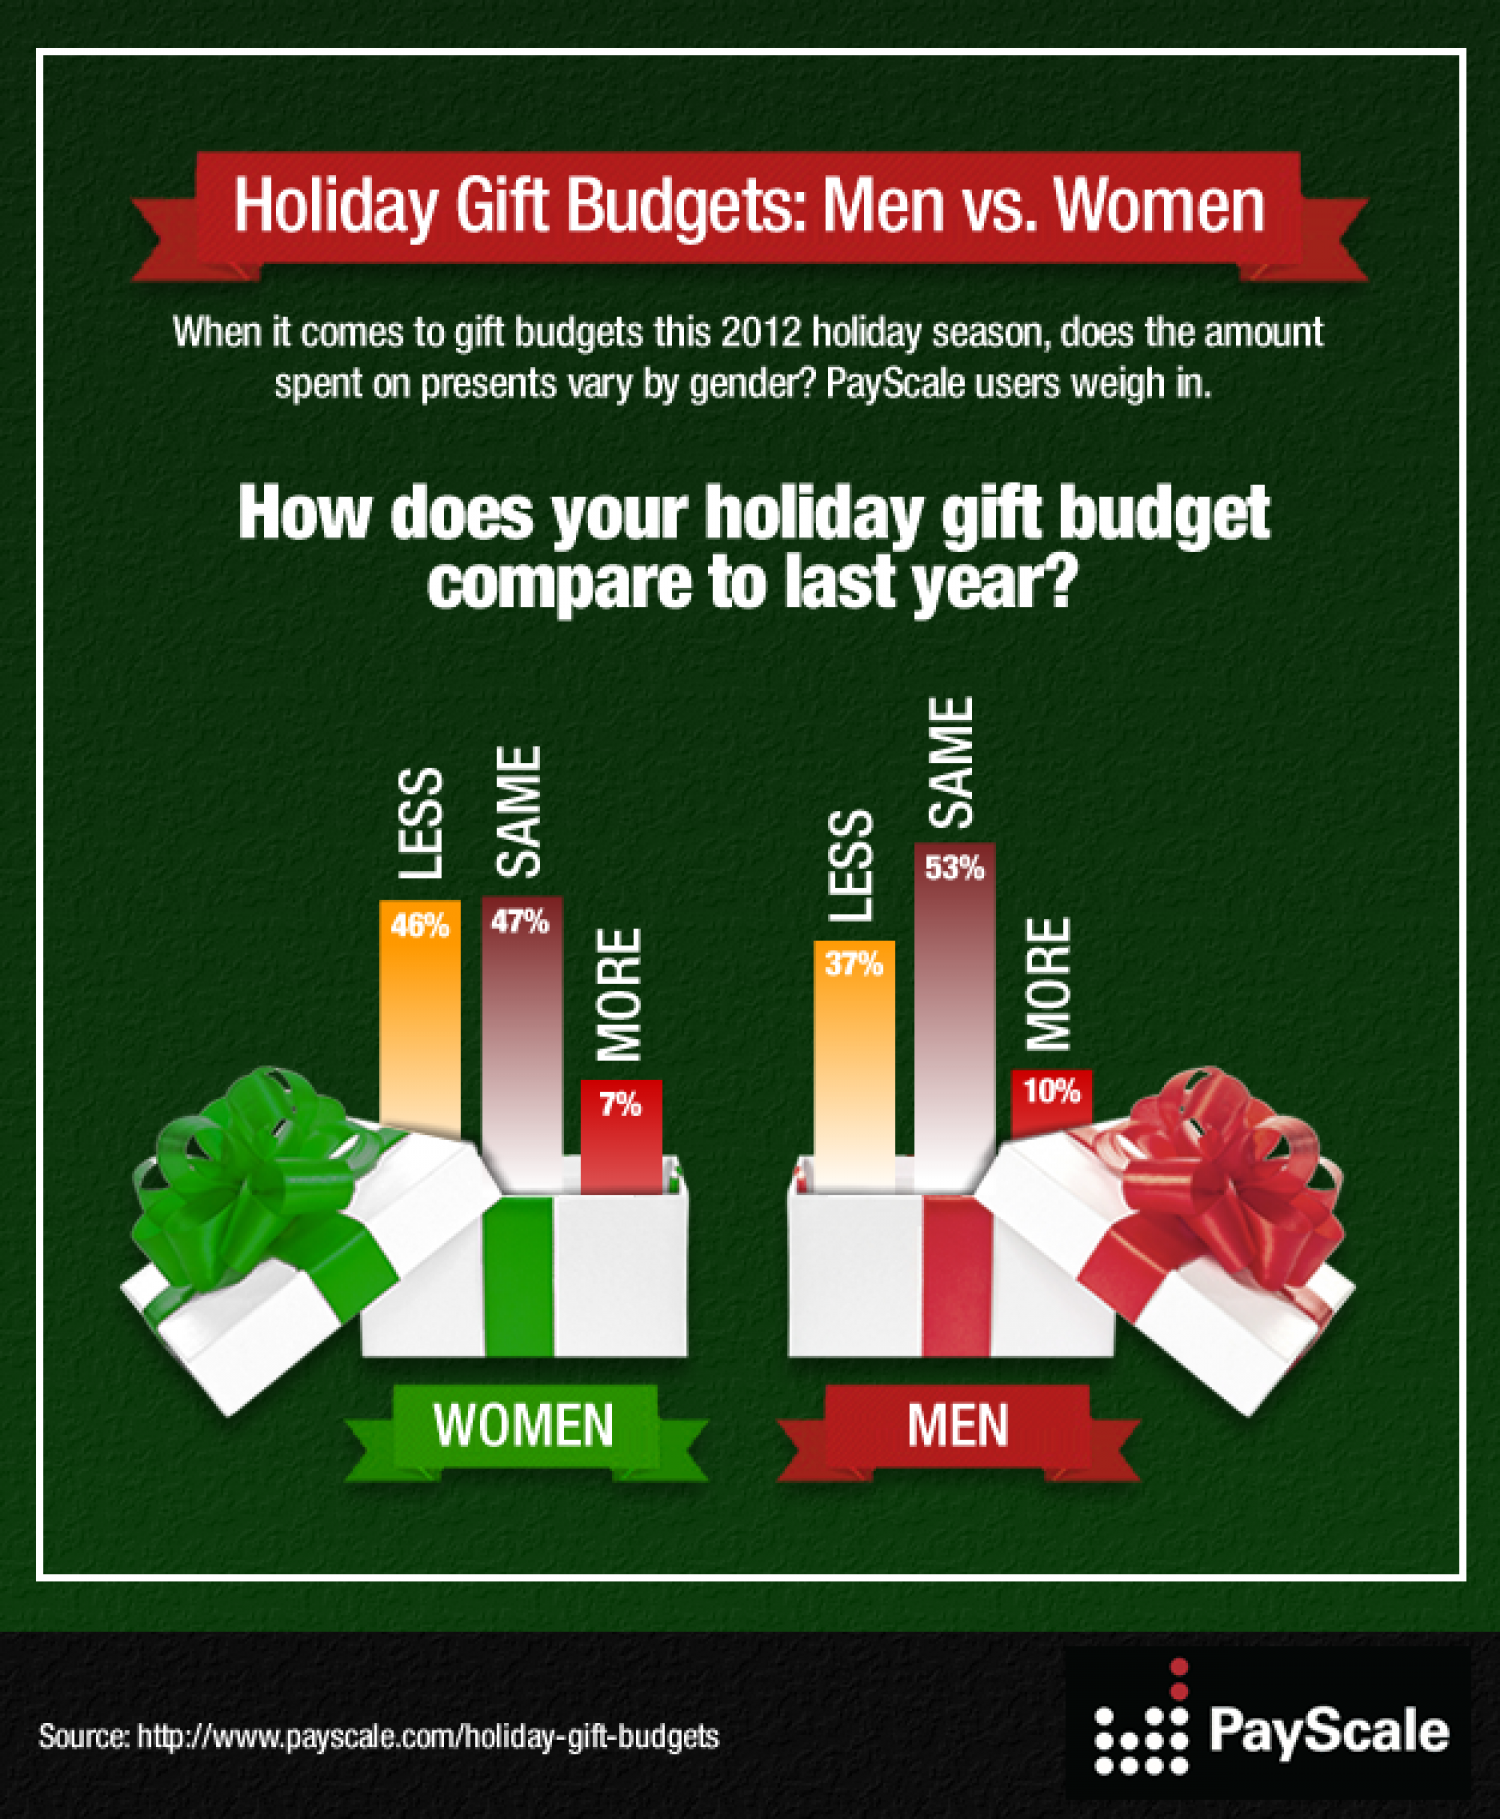 Holiday Gift Budgets: Men vs. Women Infographic